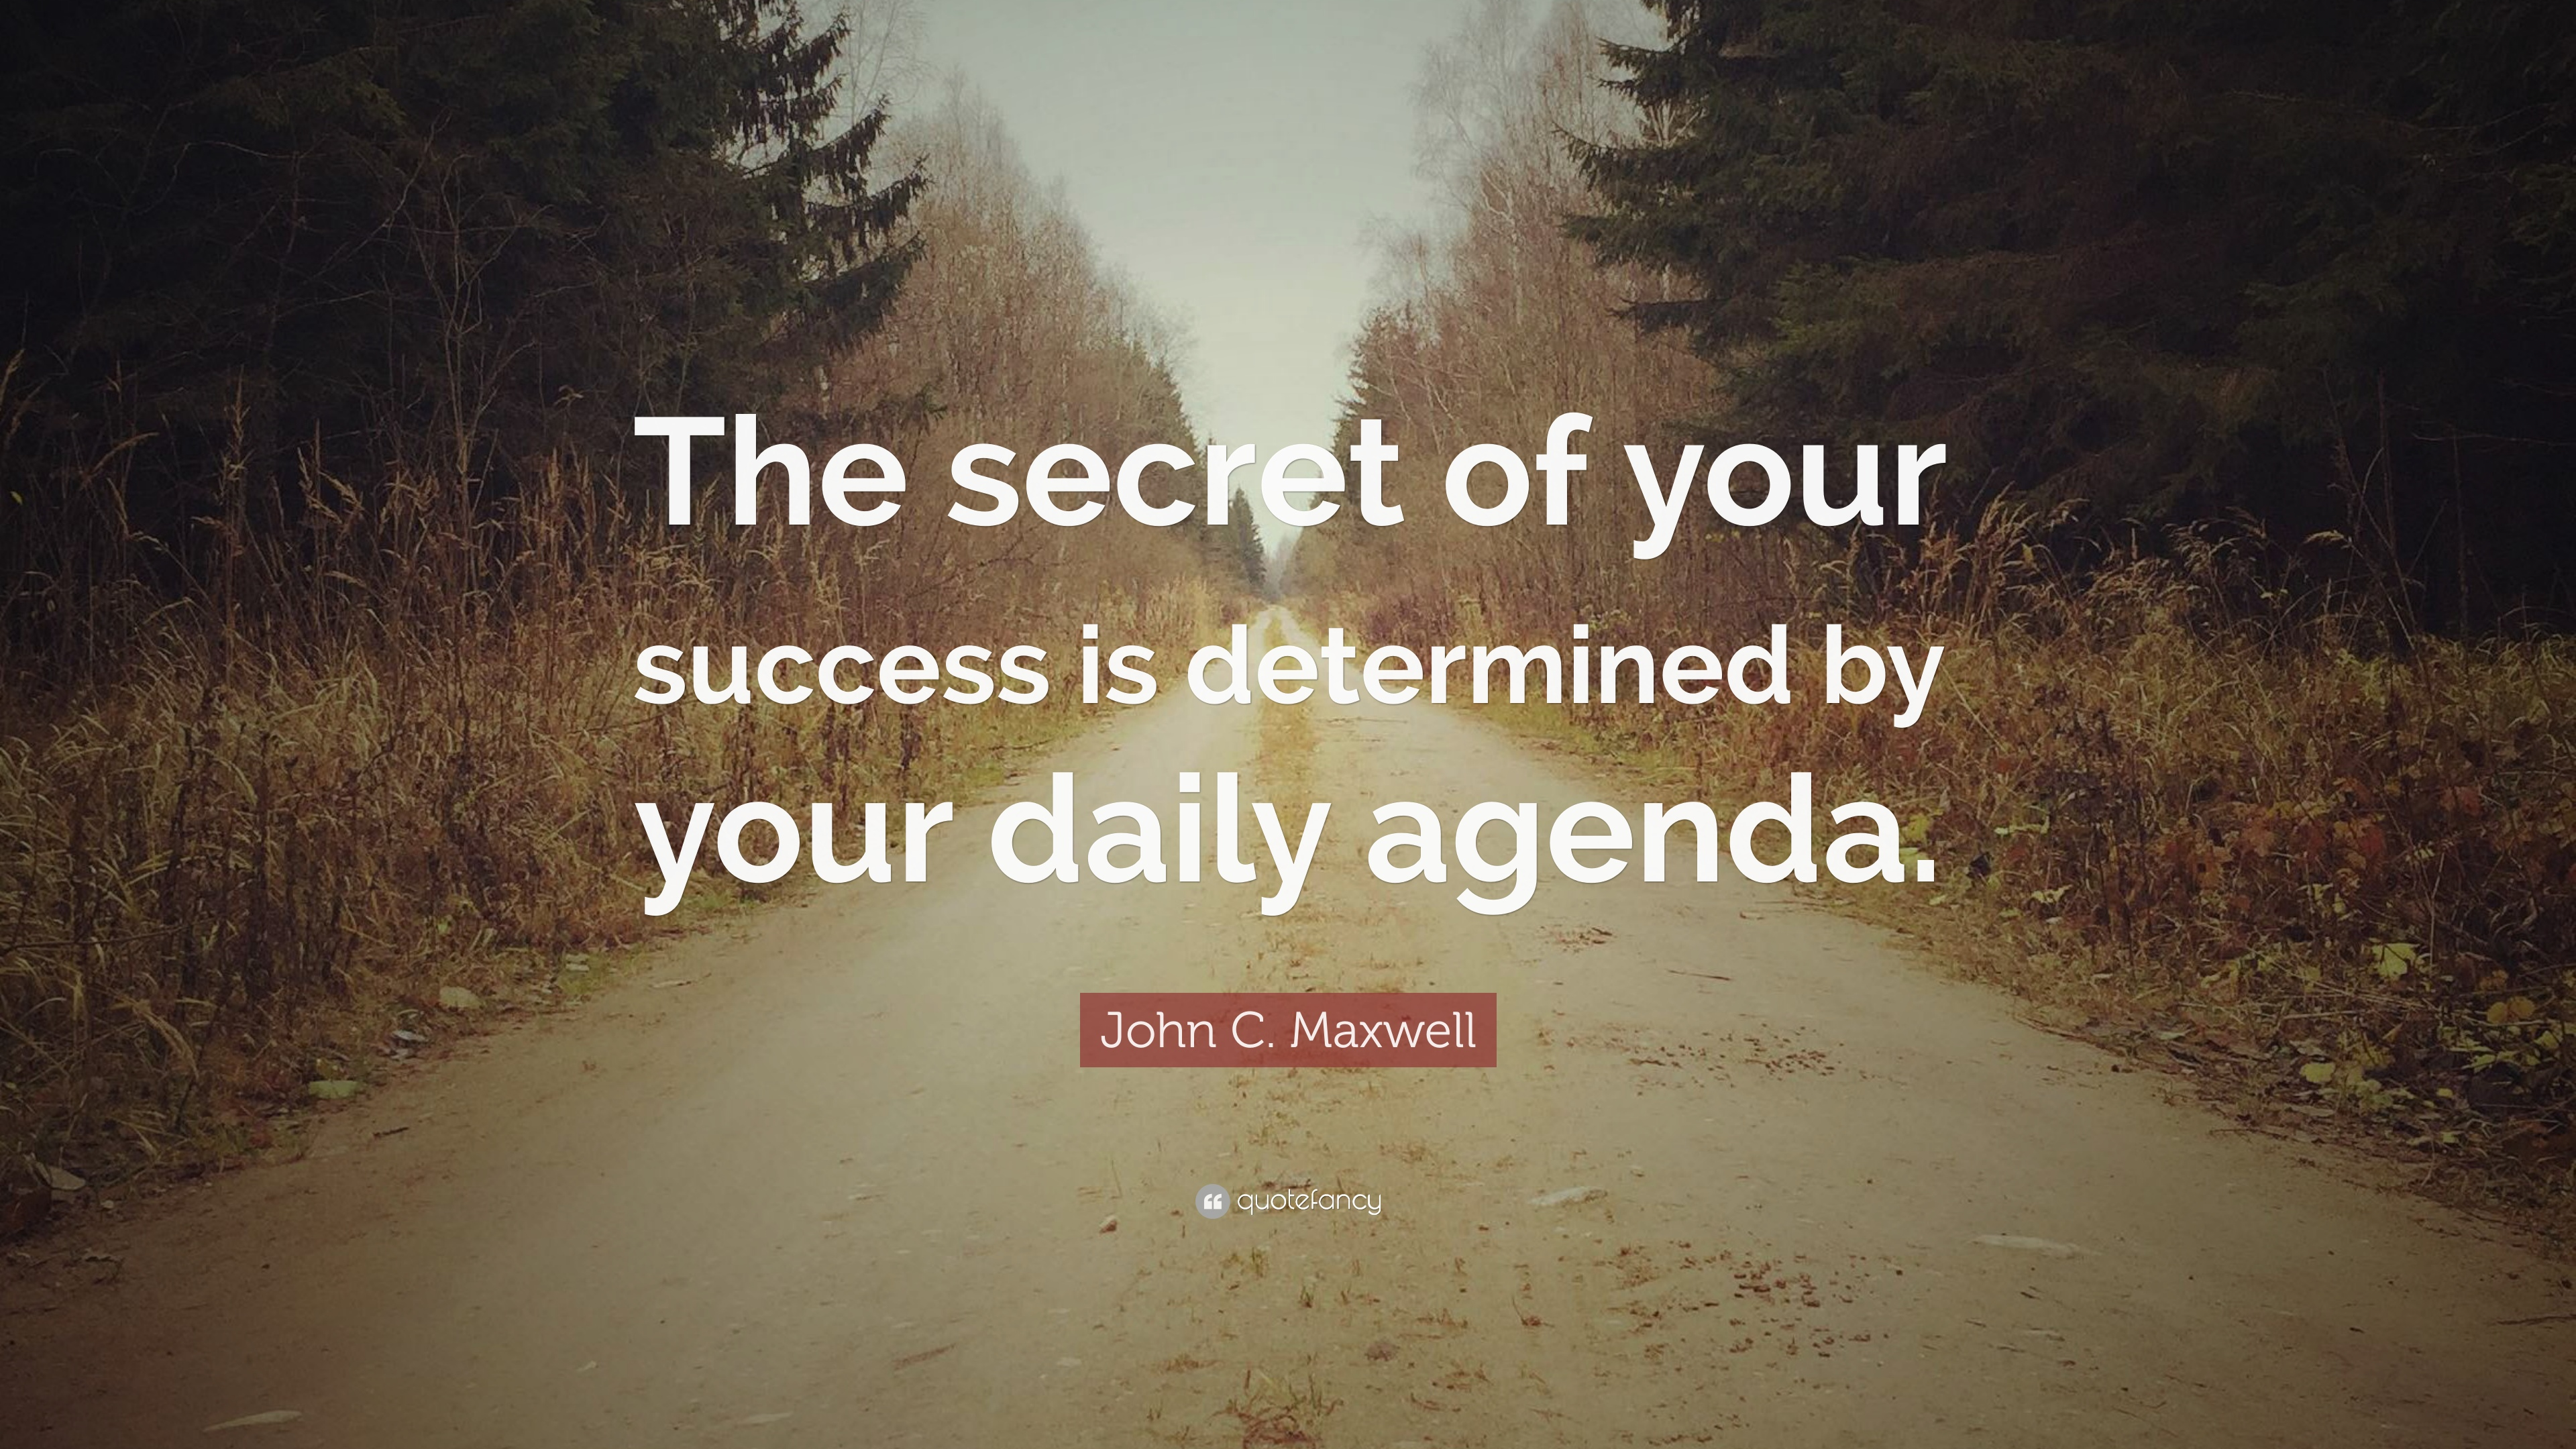 John C Maxwell Quote The Secret Of Your Success Is Determined By